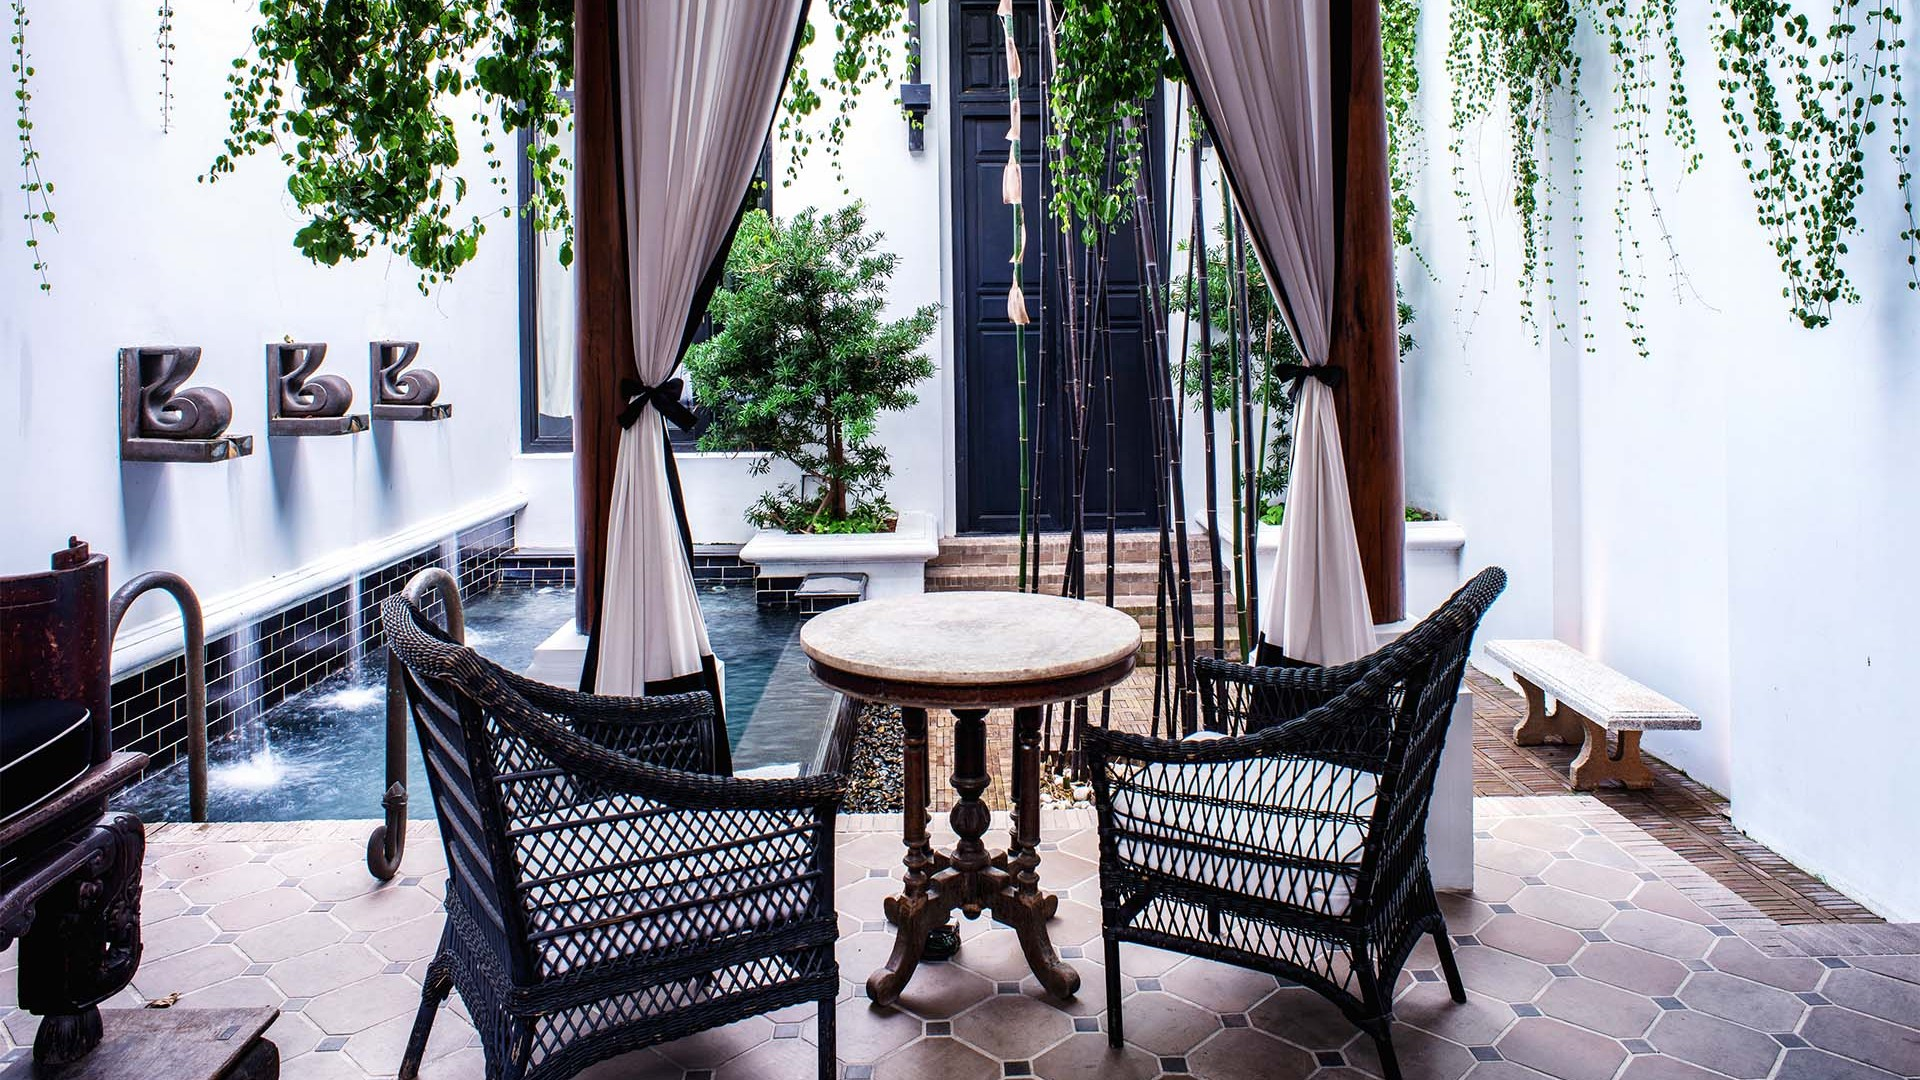 Visiting Bangkok The Siam Hotel offers a seriously sophisticated